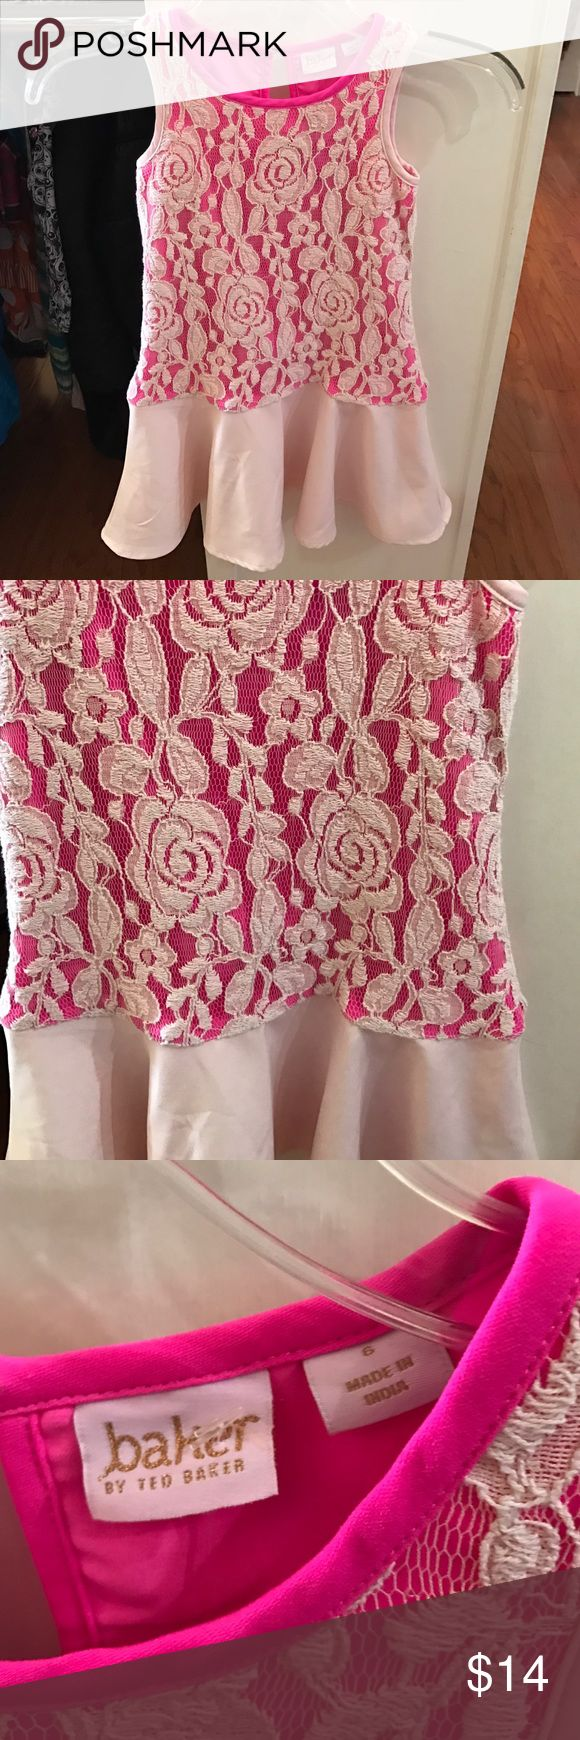 Baker by Ted Baker Dress Girls Pink with floral lace, sleeveless, button back closure. Great condition Baker by Ted Baker Dresses Casual